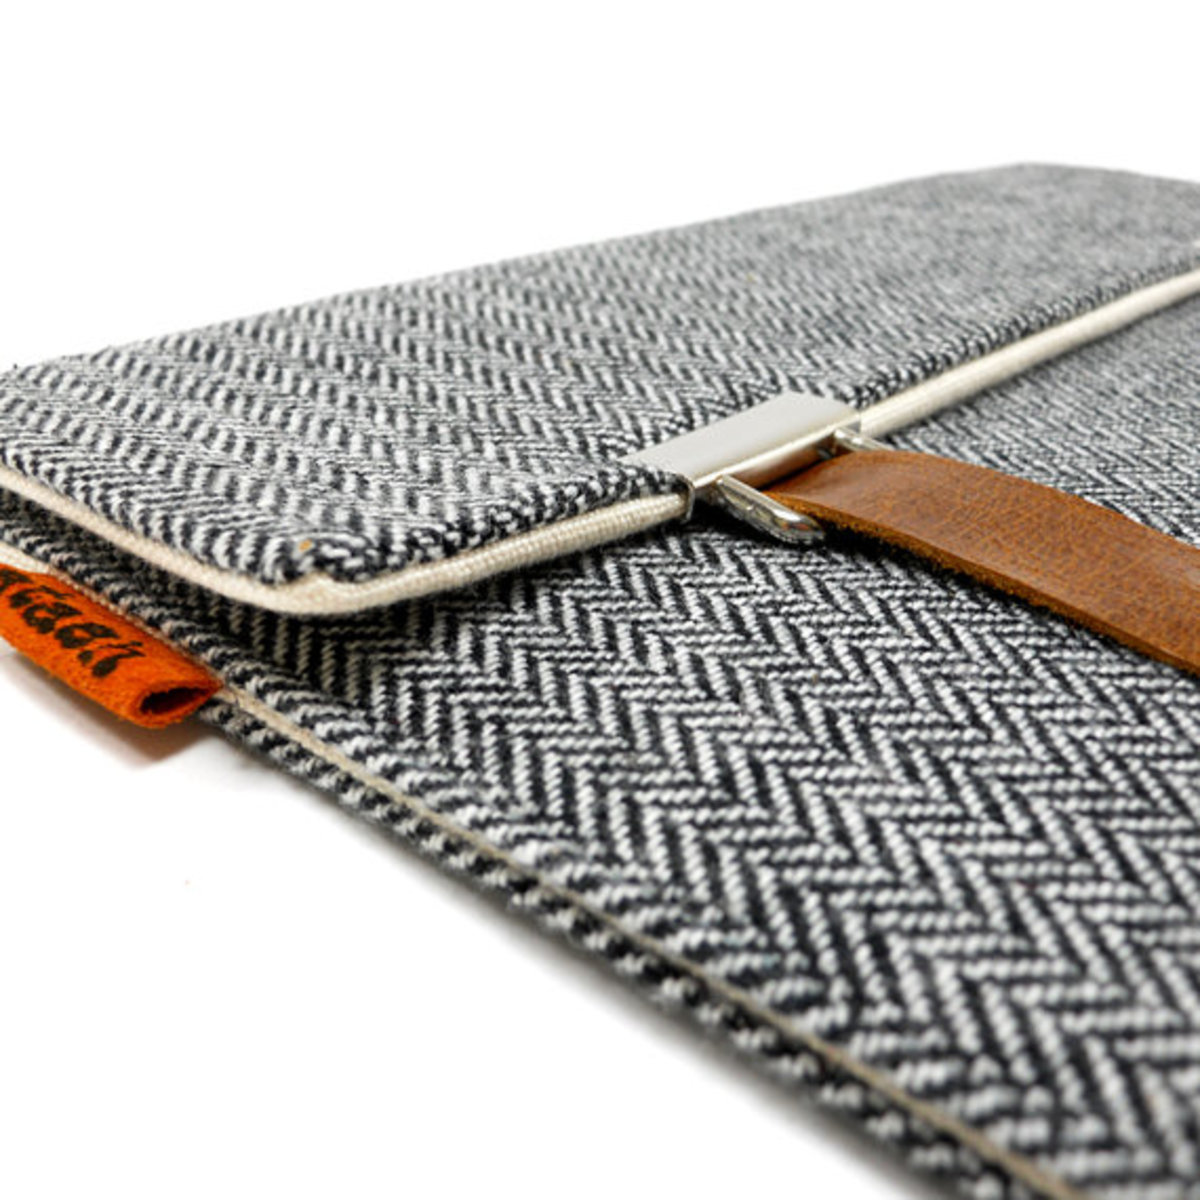 iPad case - gray herringbone